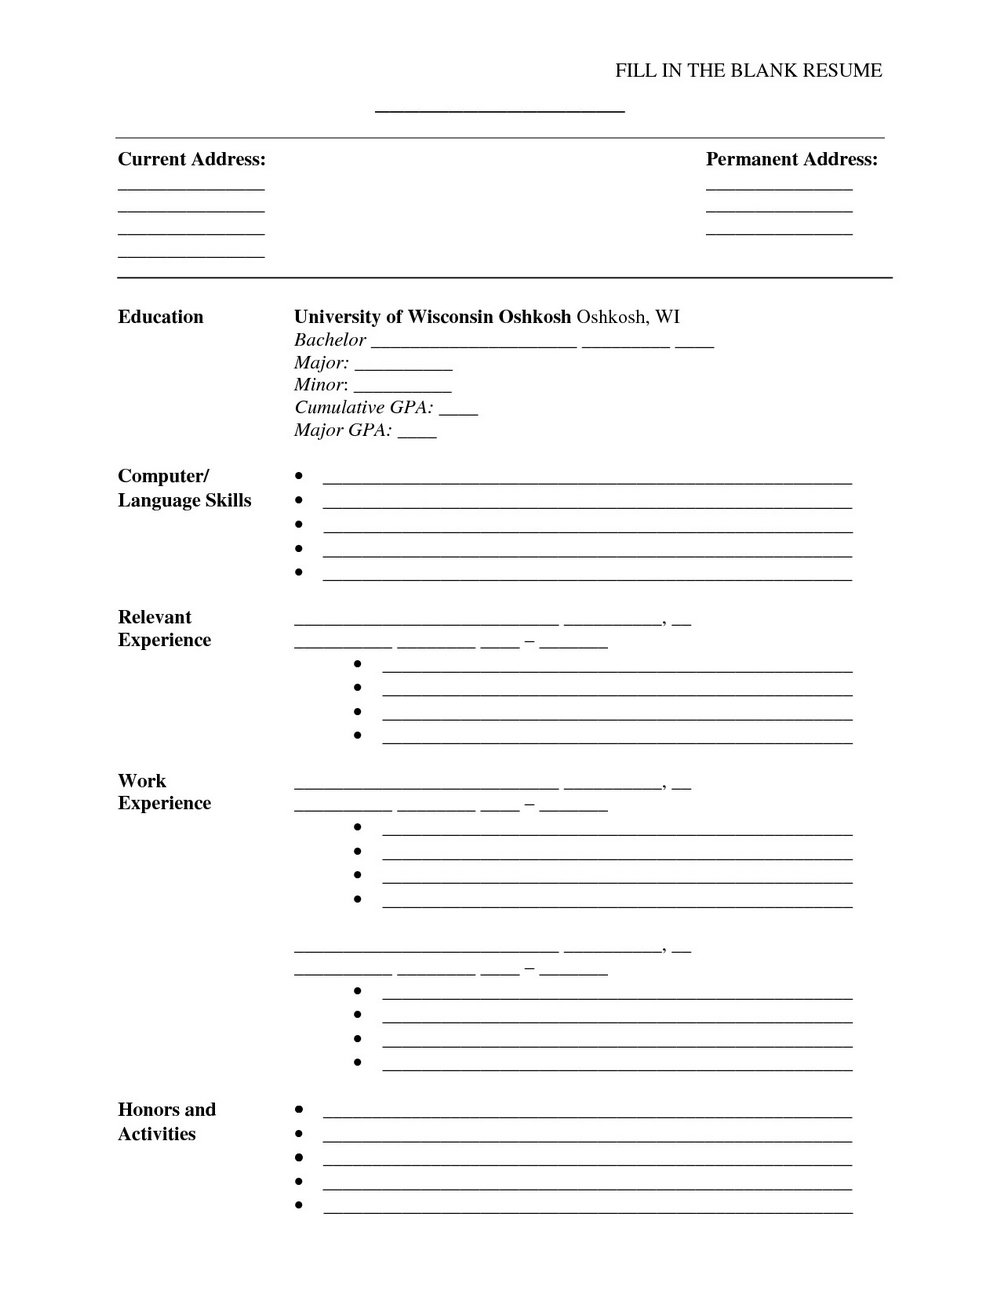 Blank Resume To Fill Out